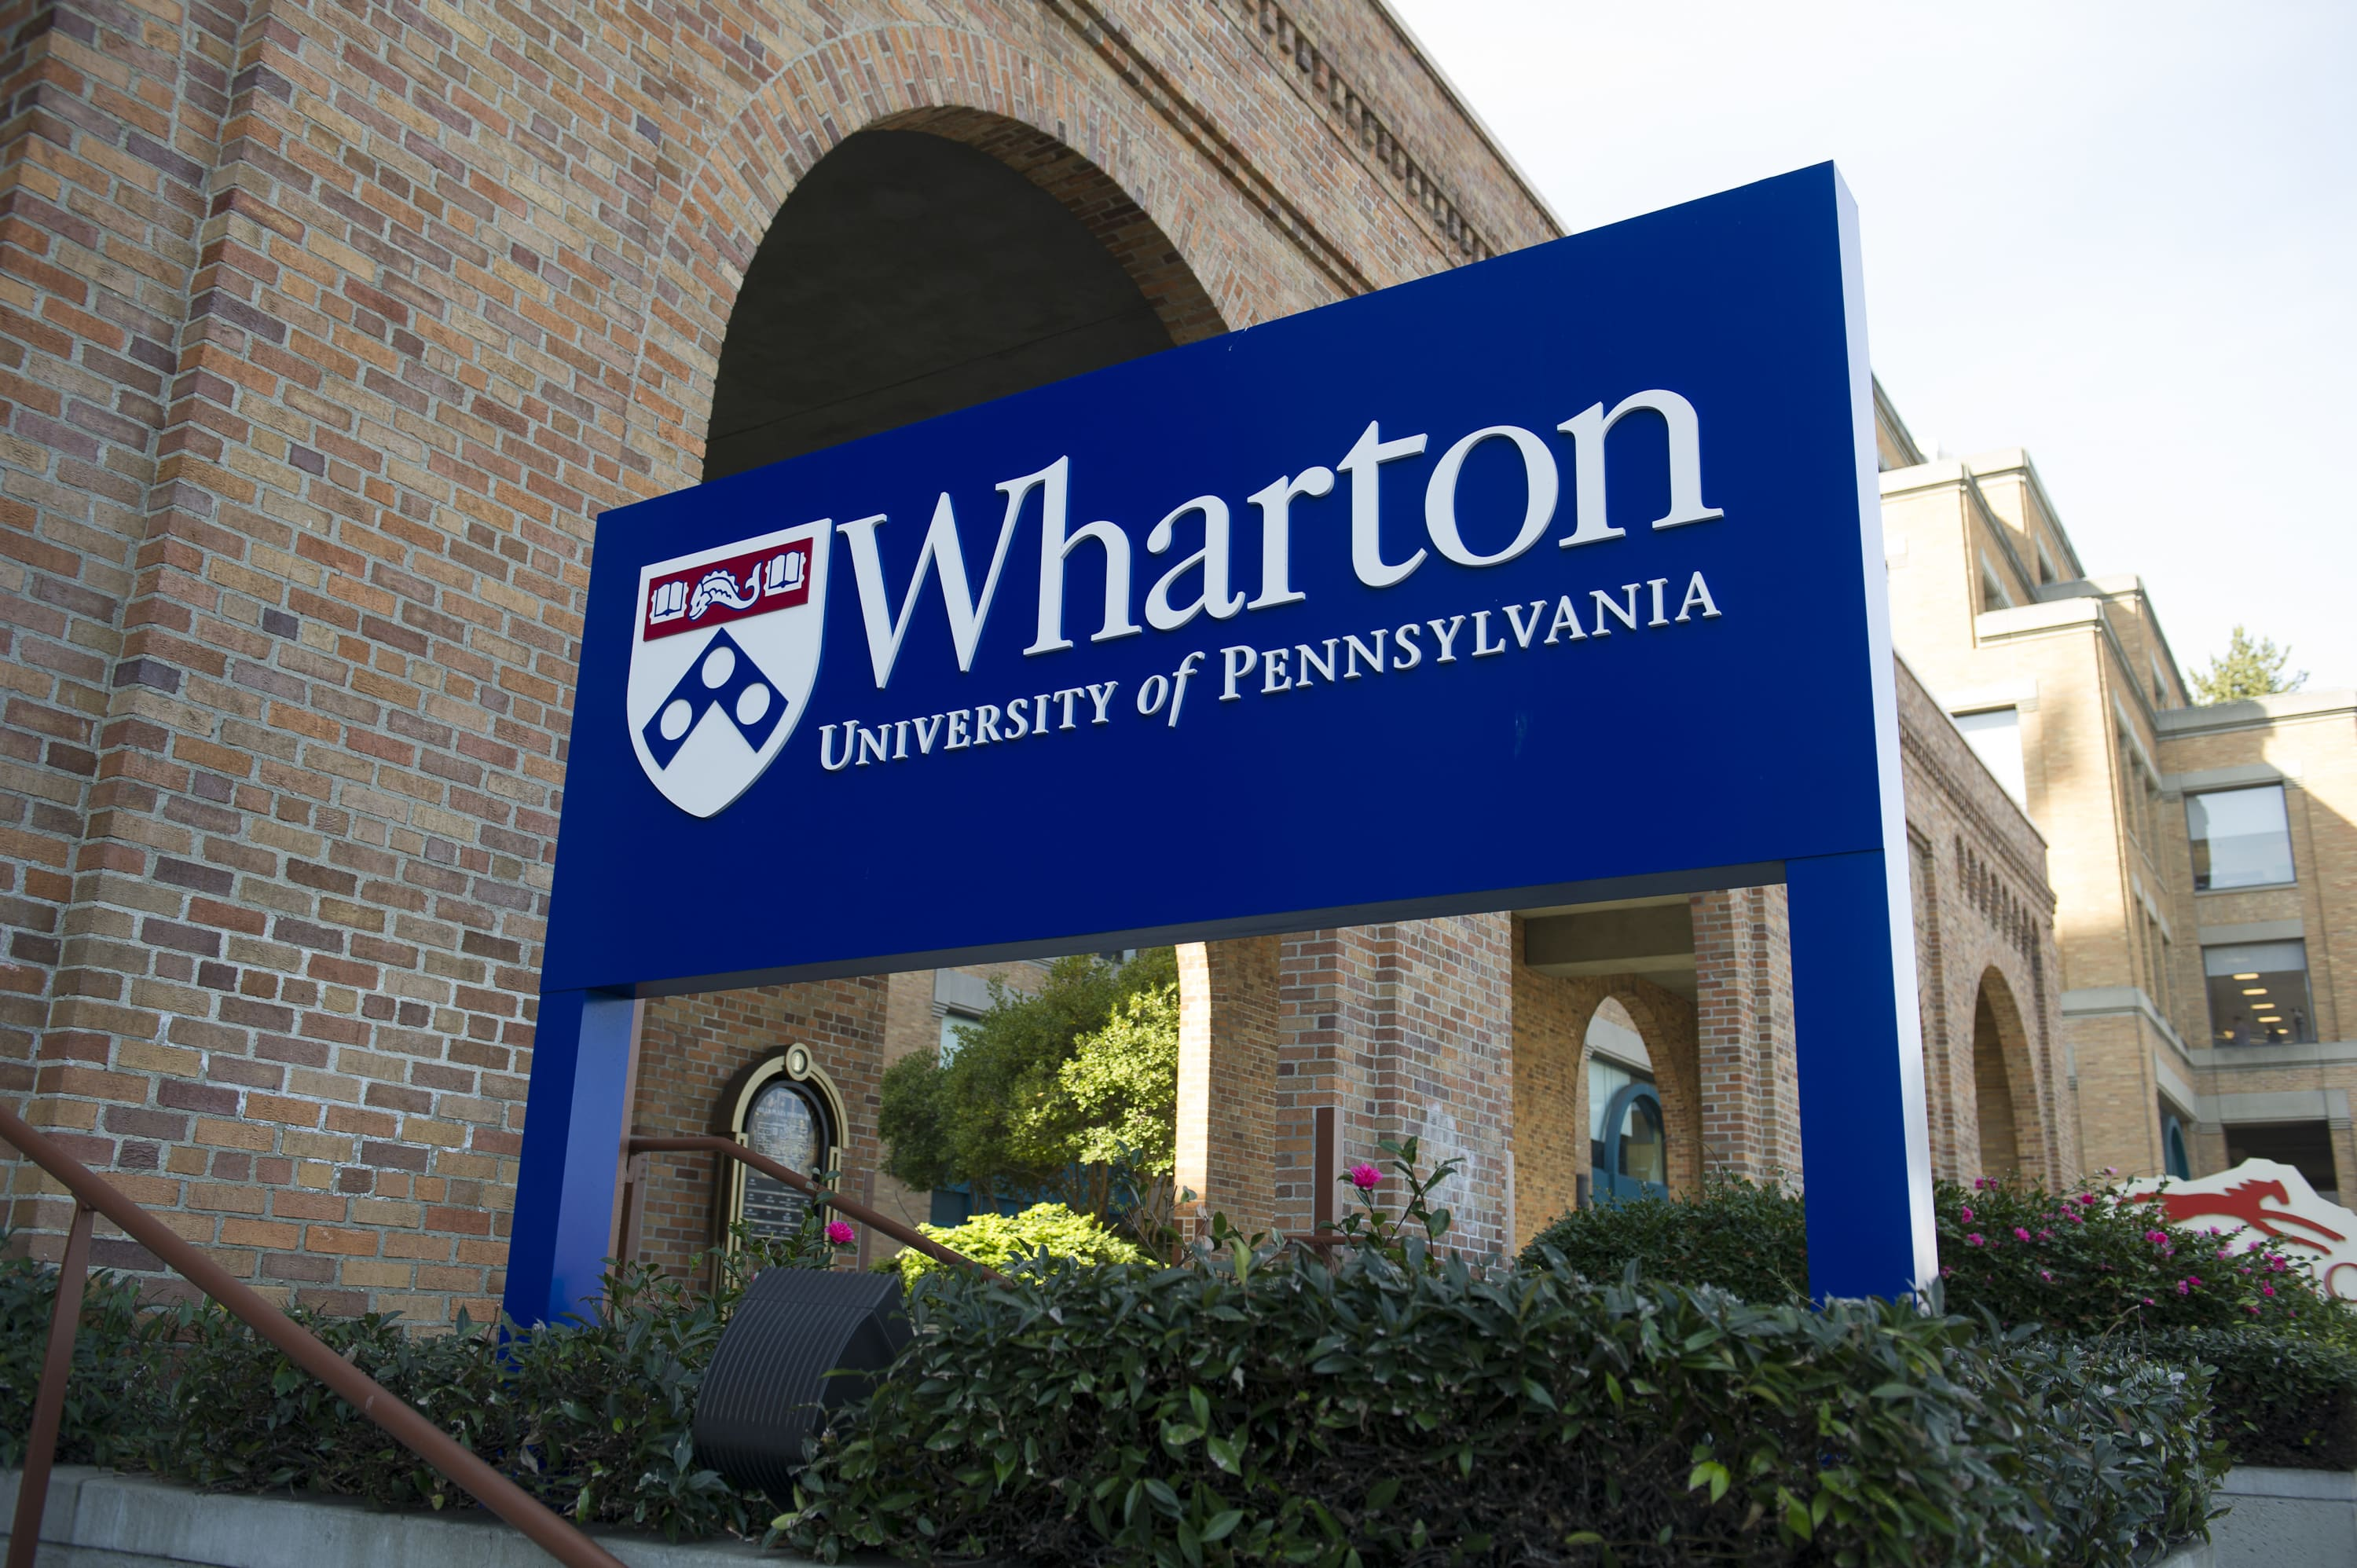 Even these Wharton business school students lack a basic personal finance education